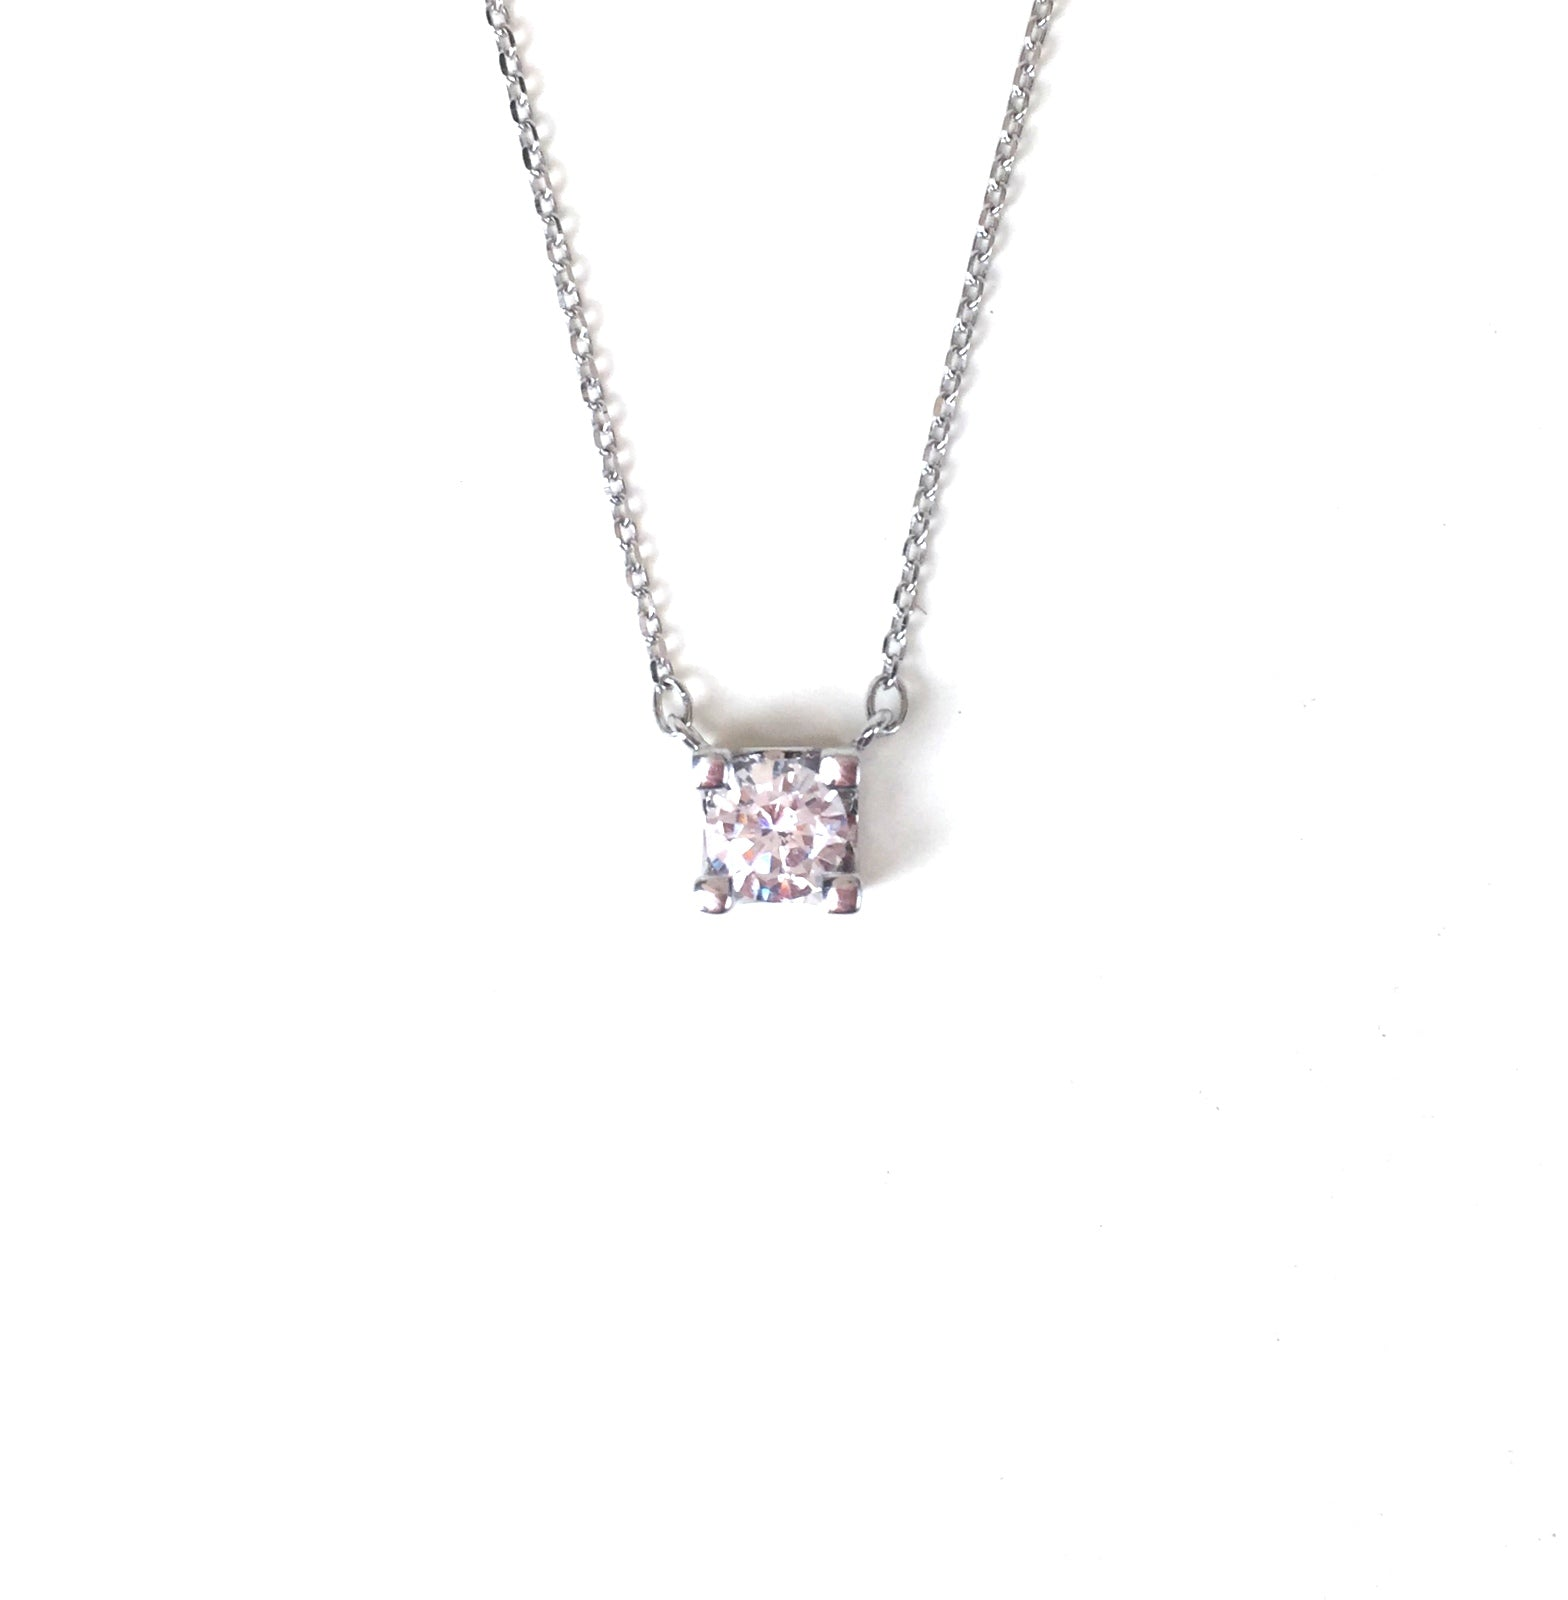 LITTLE SQUARE STERLING SILVER NECKLACE